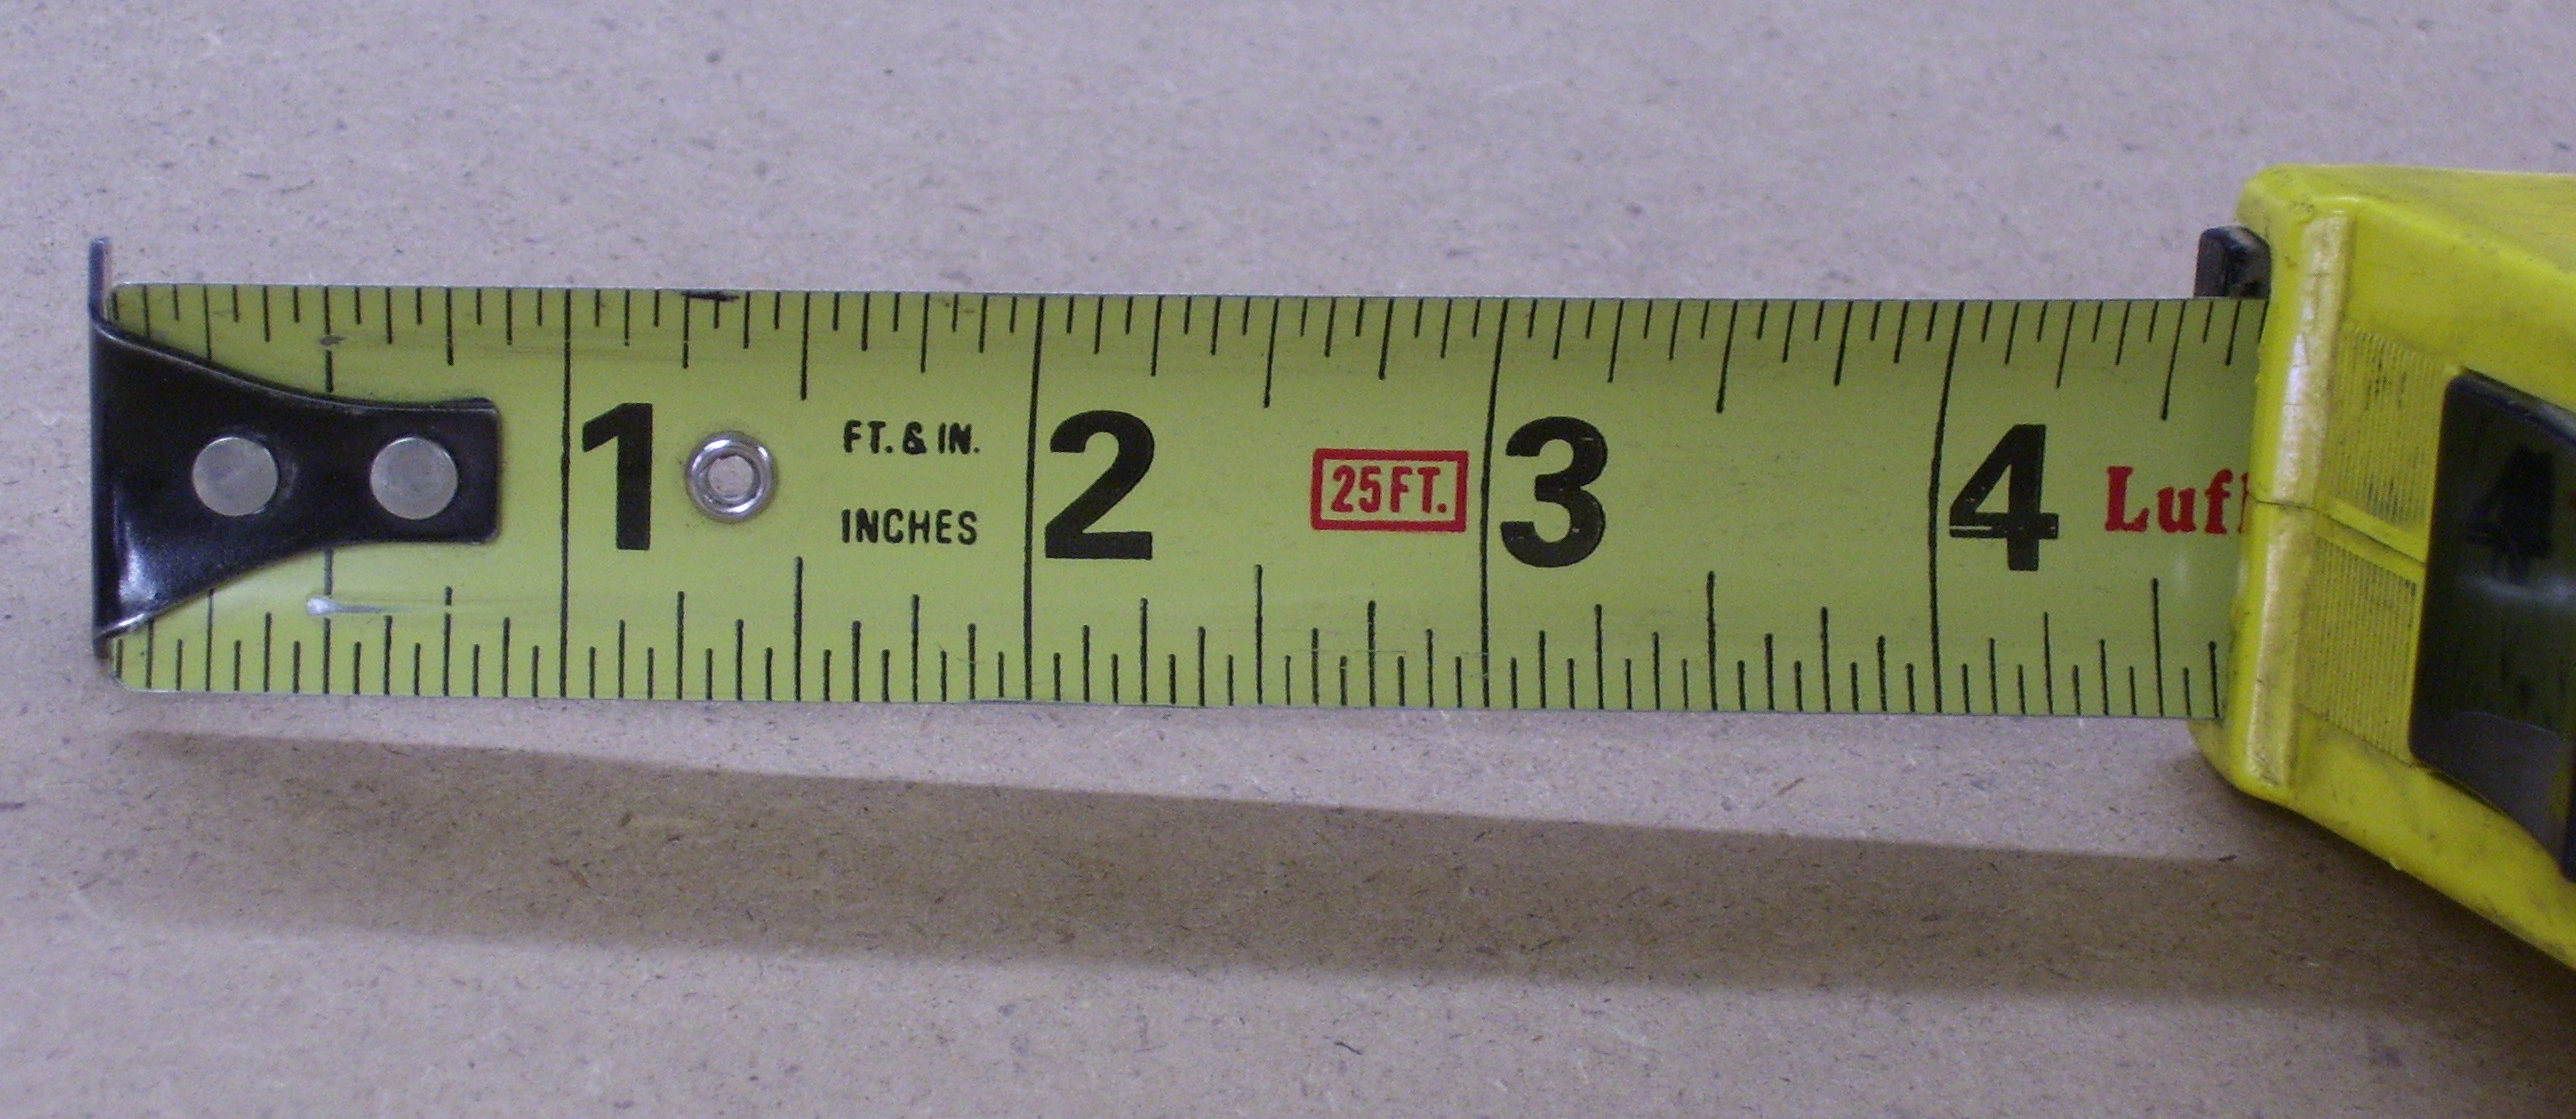 worksheet Tape Measure Fractions measuring and fractions a tape measure is handy tool it easy to use gives consistent information school rulers yardsticks do not reliably from the